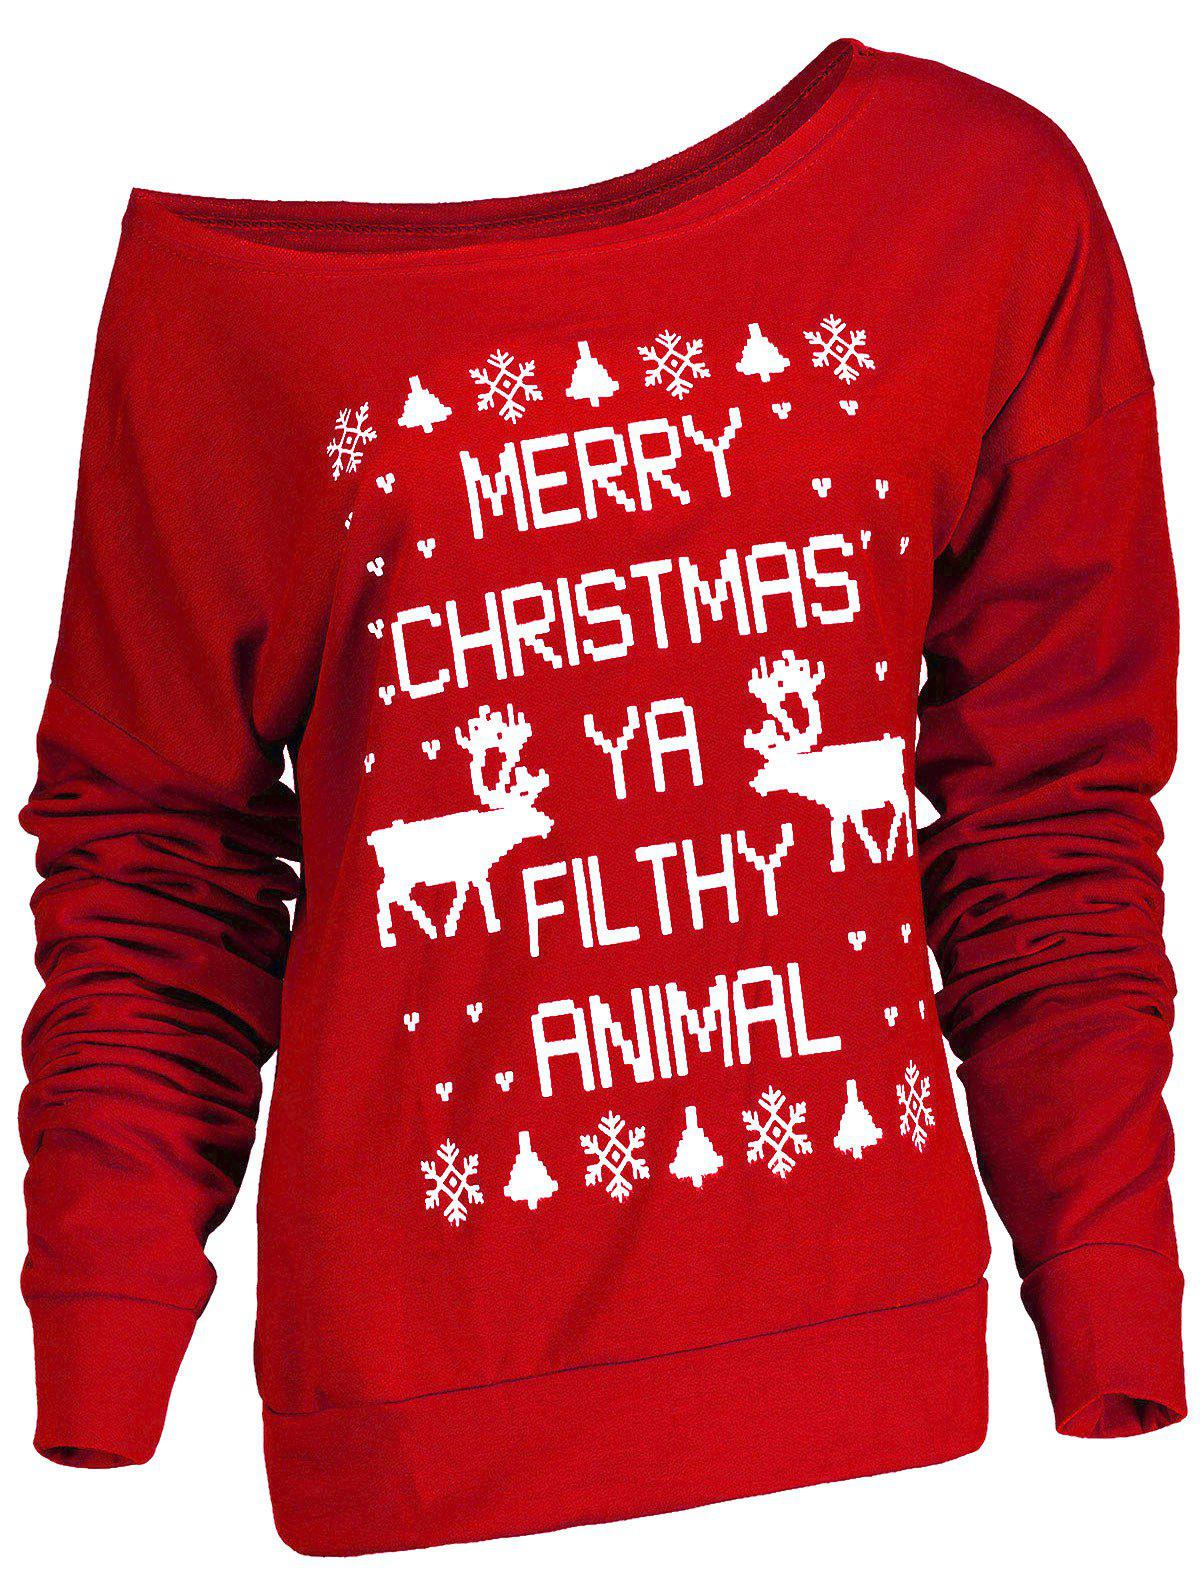 Fresh Style Letter and Snowflake Print Pullover Christmas Sweatshirt For WomenWOMEN<br><br>Size: S; Color: RED; Material: Polyester; Shirt Length: Regular; Sleeve Length: Full; Style: Fashion; Pattern Style: Print; Weight: 0.380kg; Package Contents: 1 x Sweatshirt;